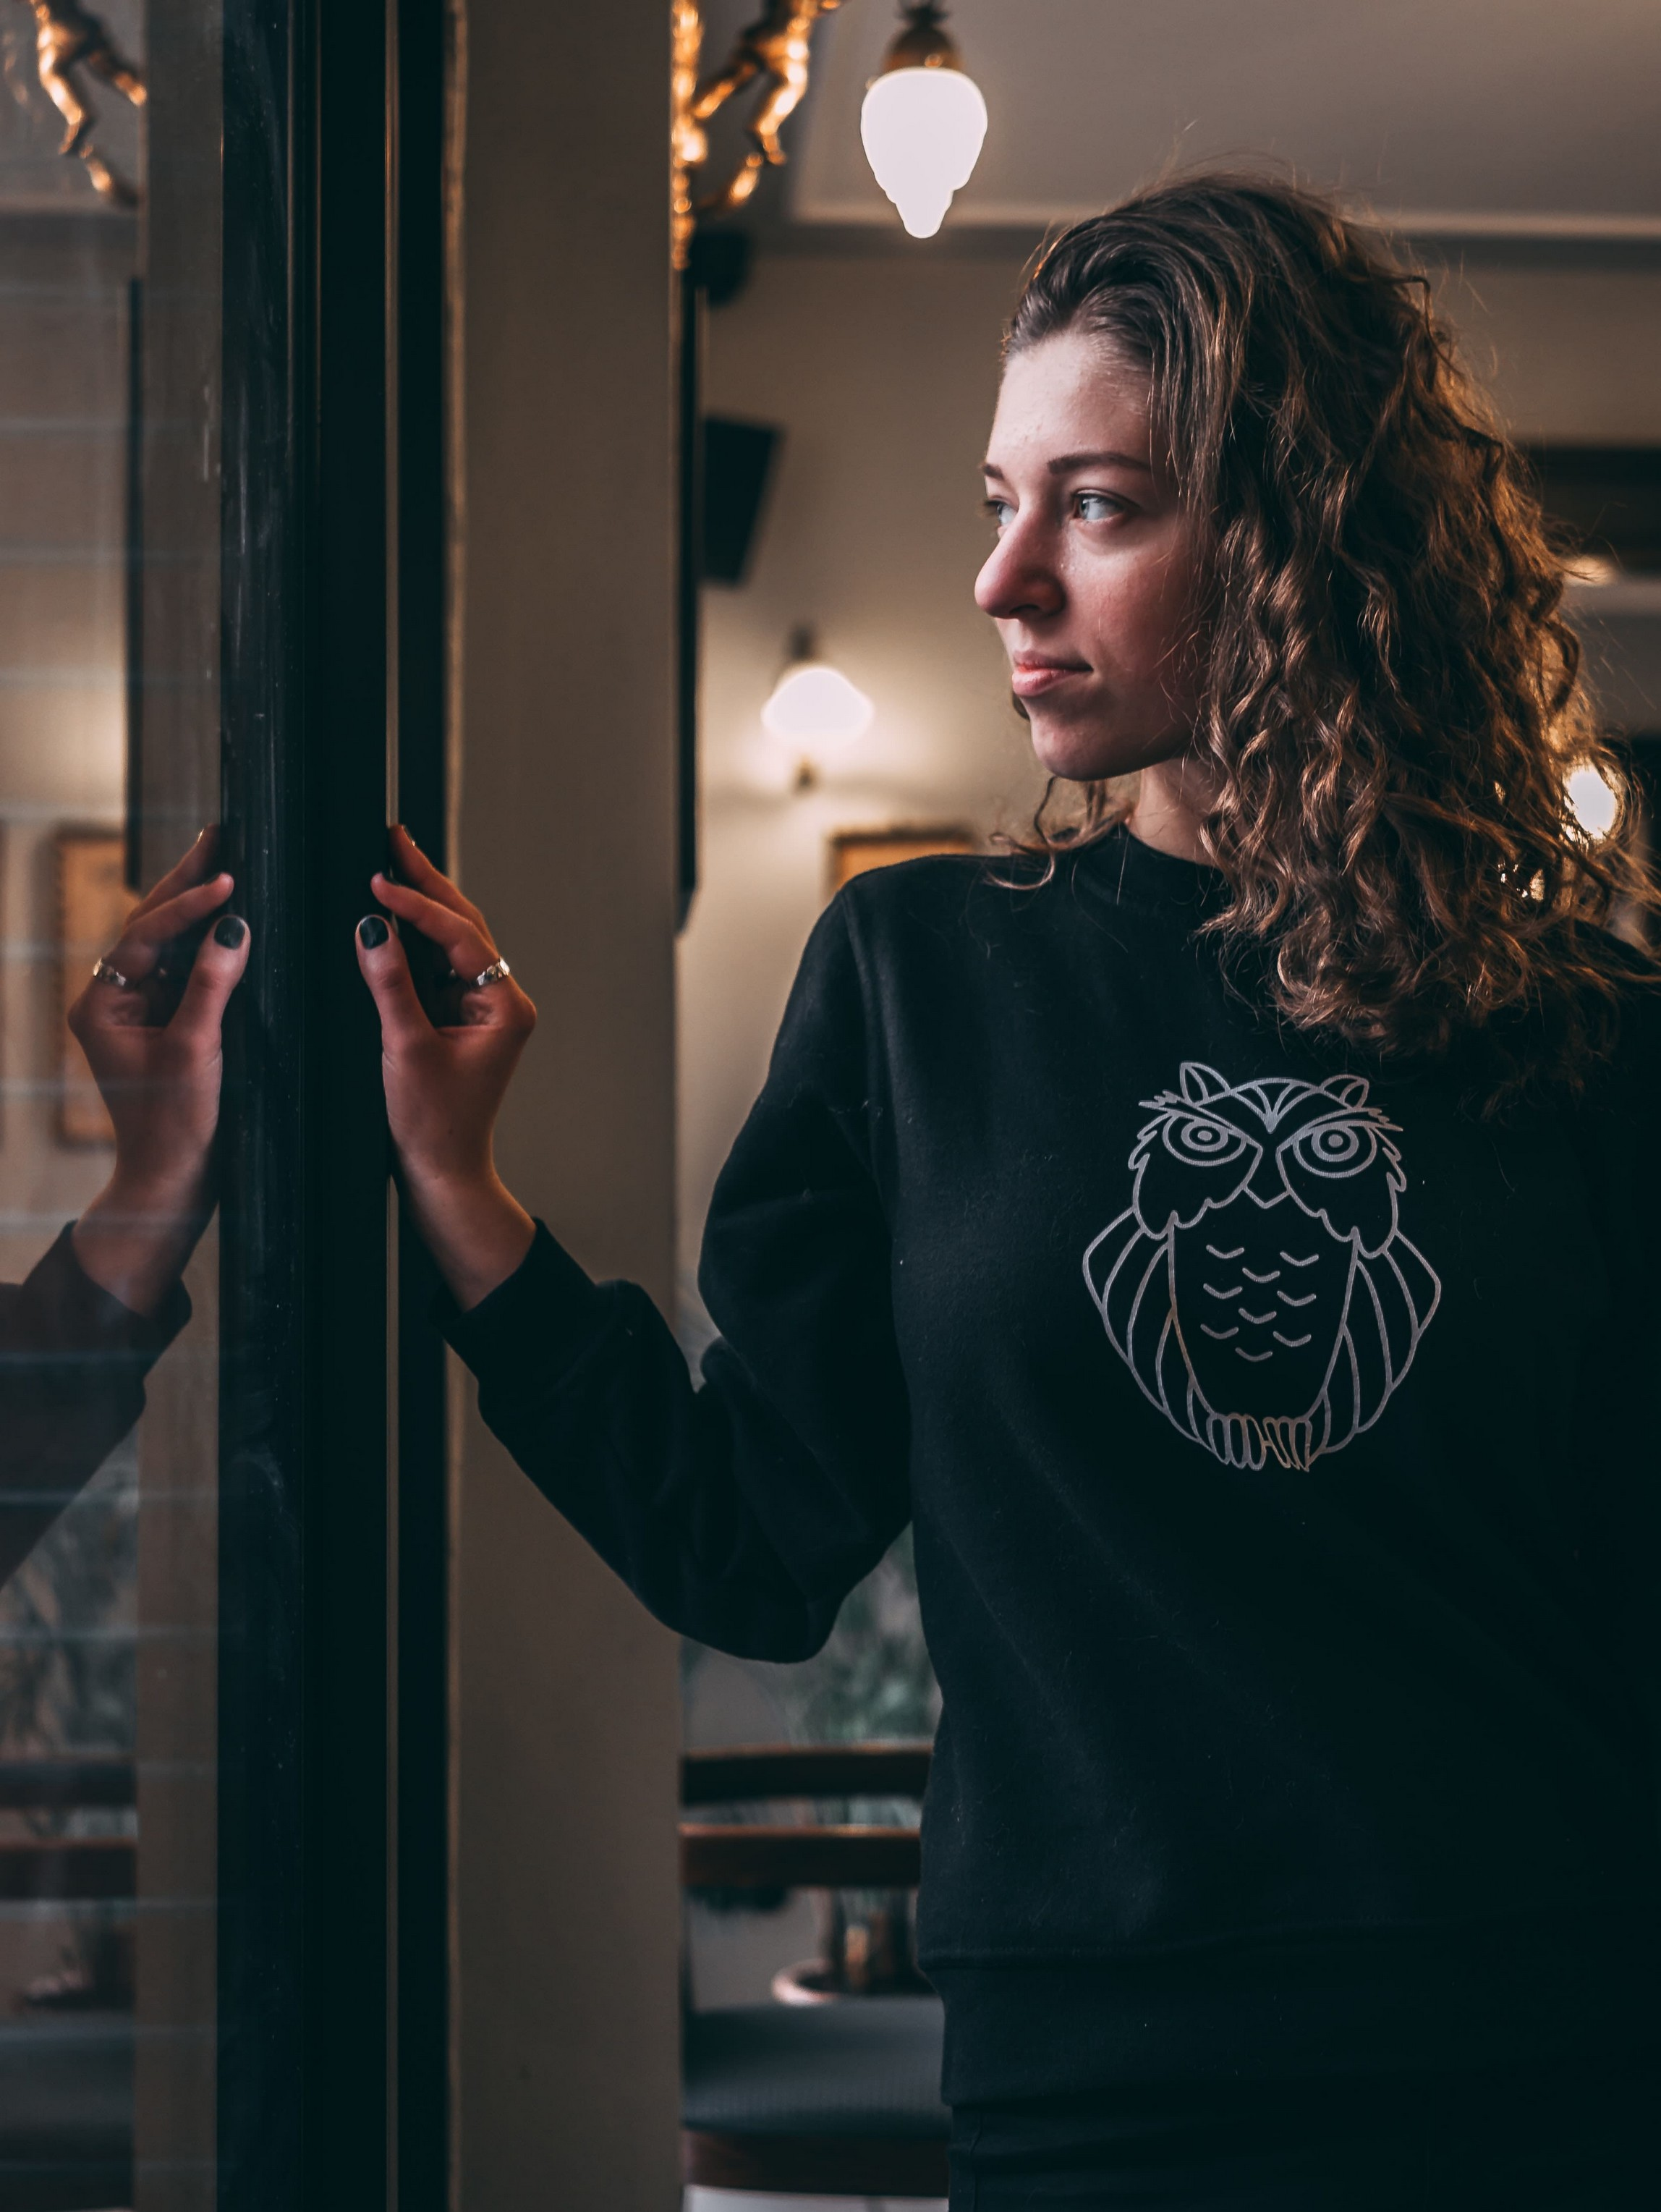 woman with curly hair stood in front of a window, whilst wearing a dark jumper with owl print.